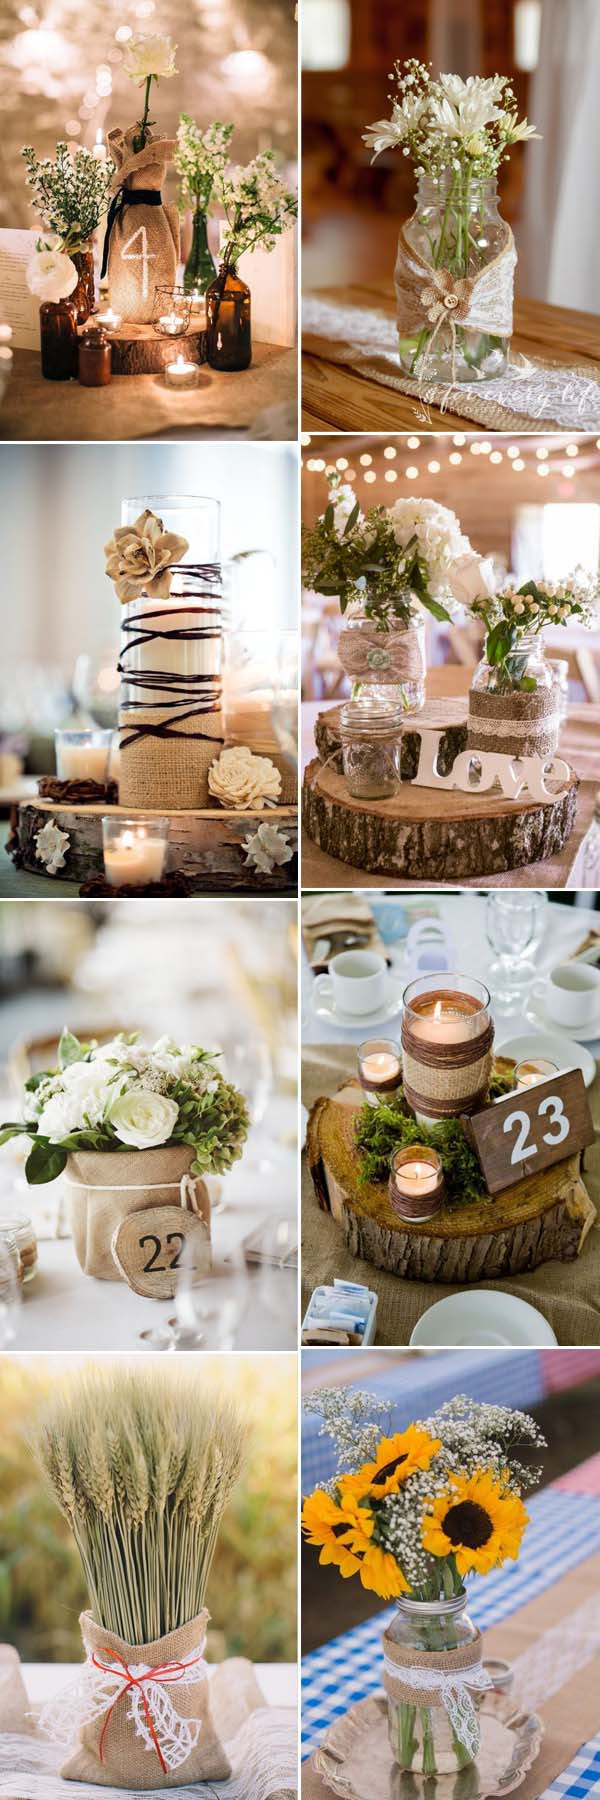 Country Chic Wedding Decor The Most Complete Burlap Rustic Wedding Ideas For Your Inspiration